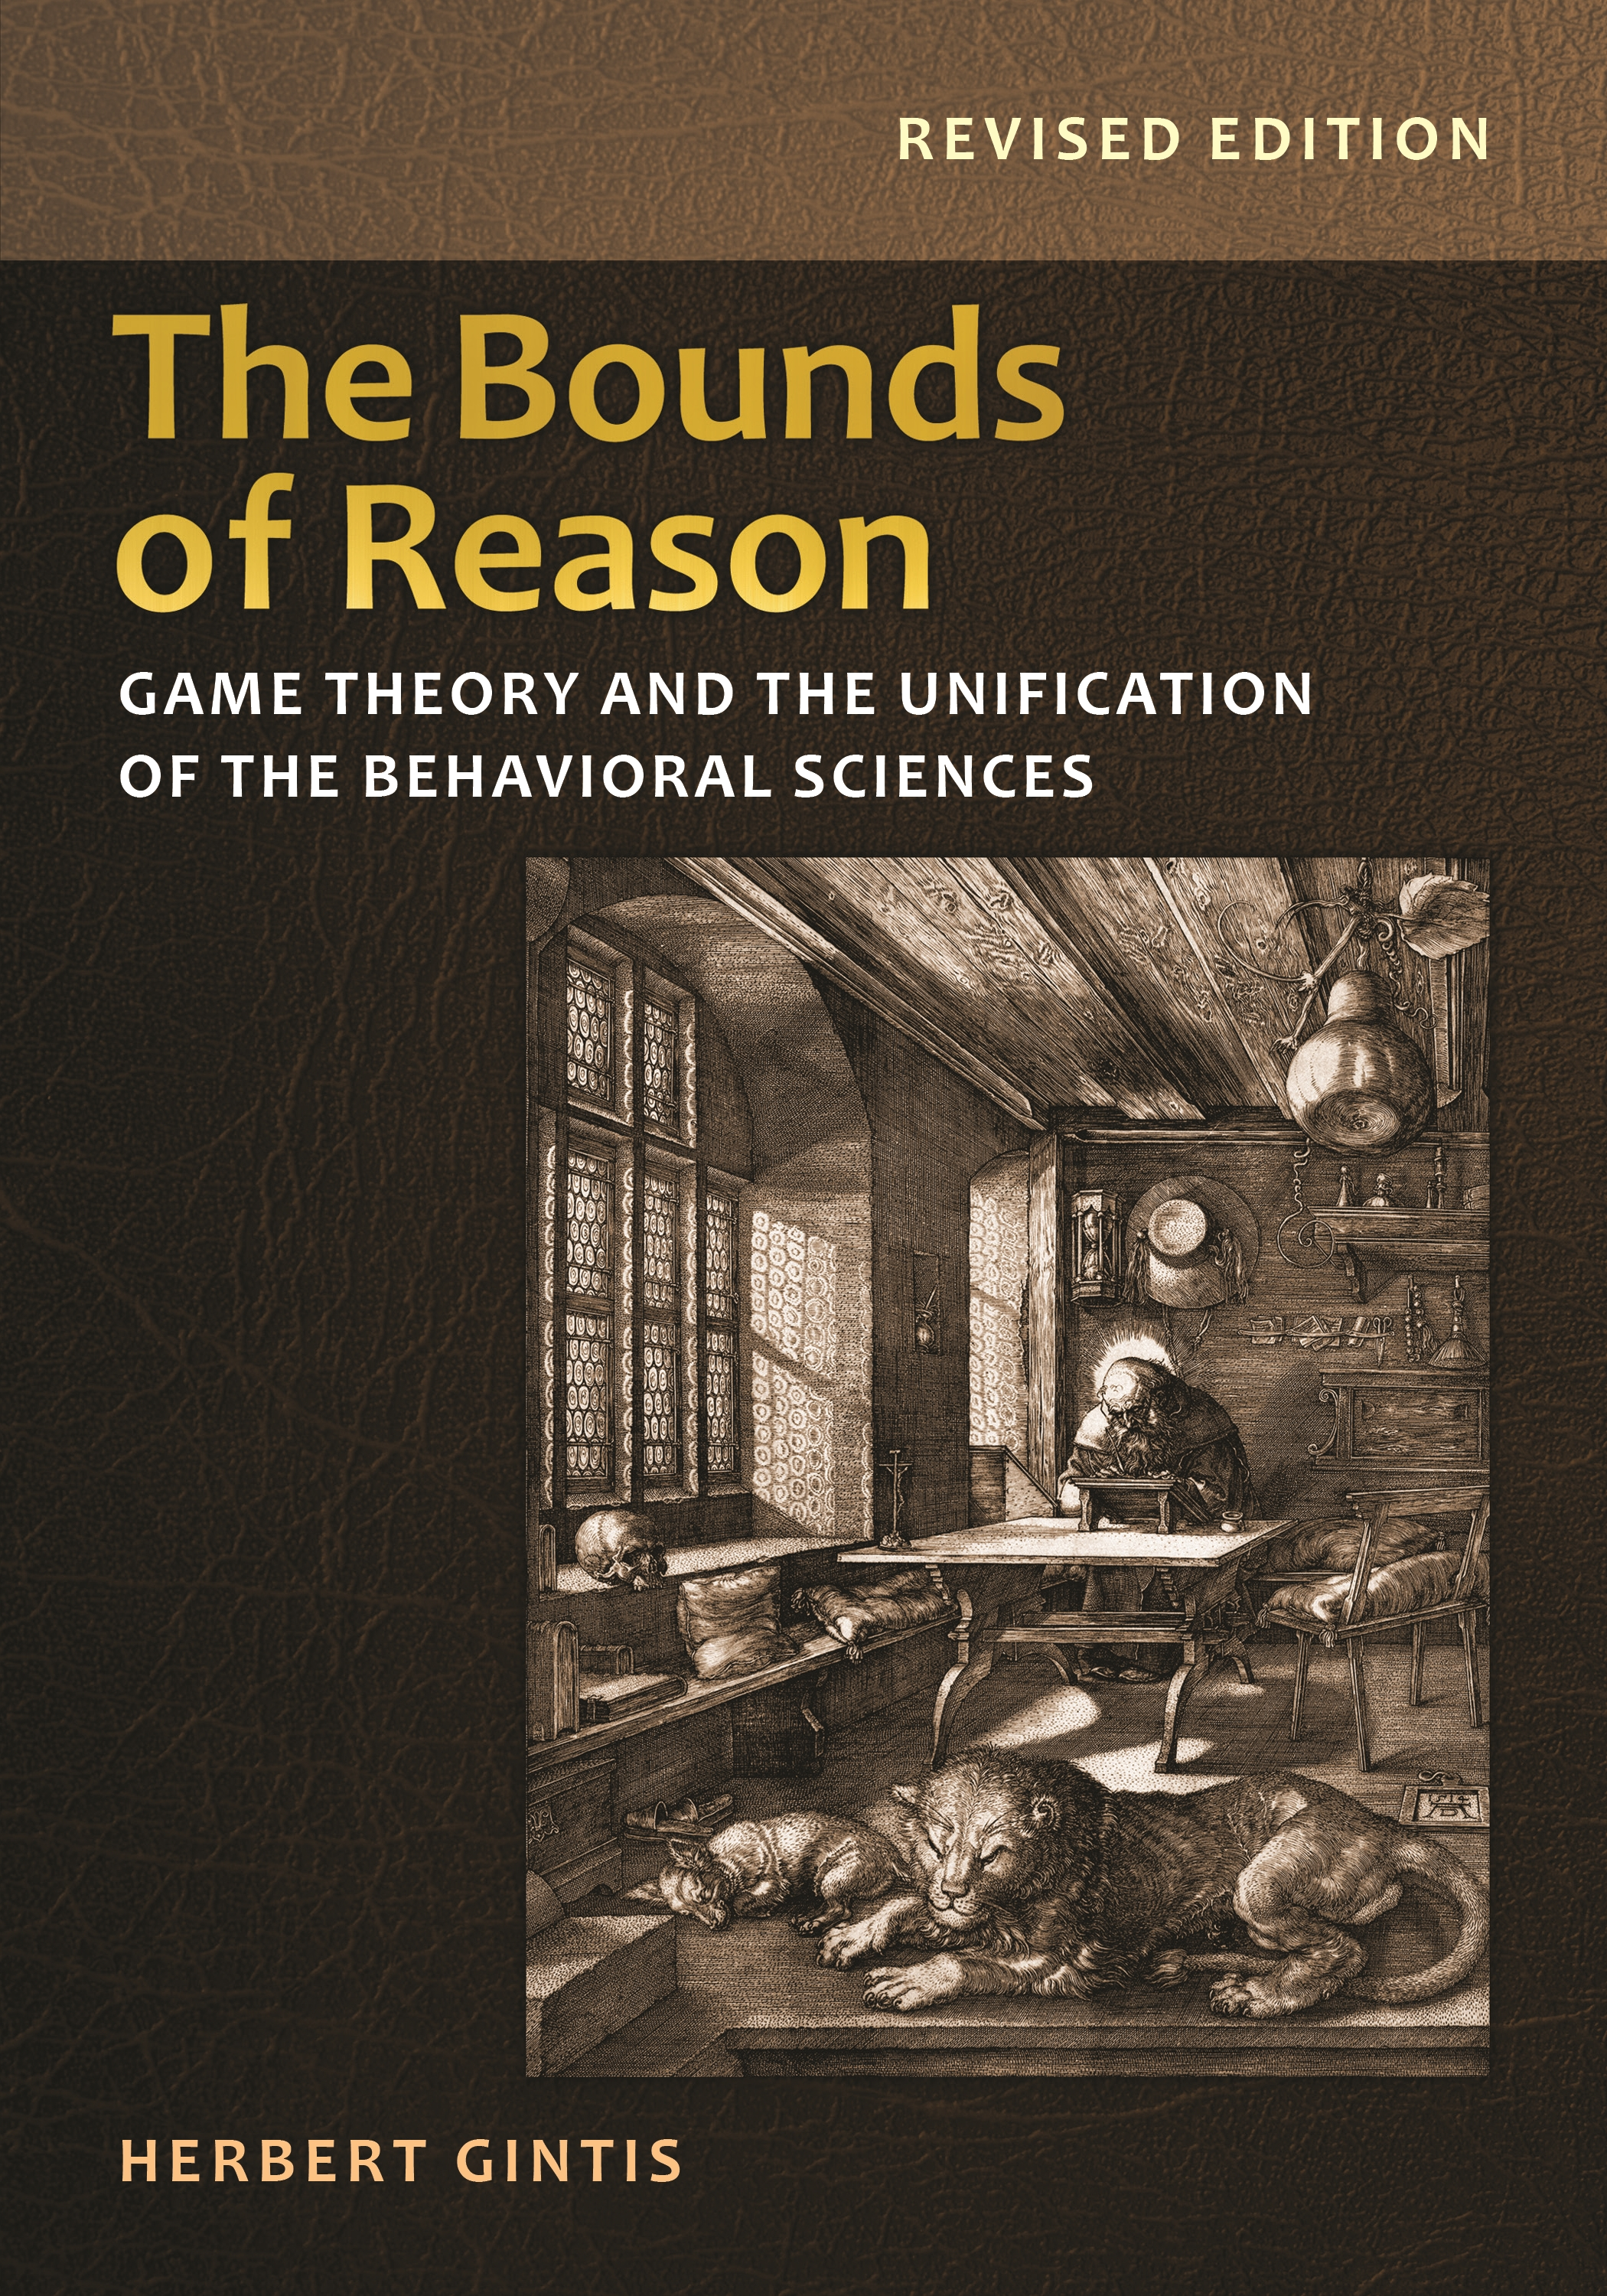 Download Ebook The Bounds of Reason by Herbert Gintis Pdf